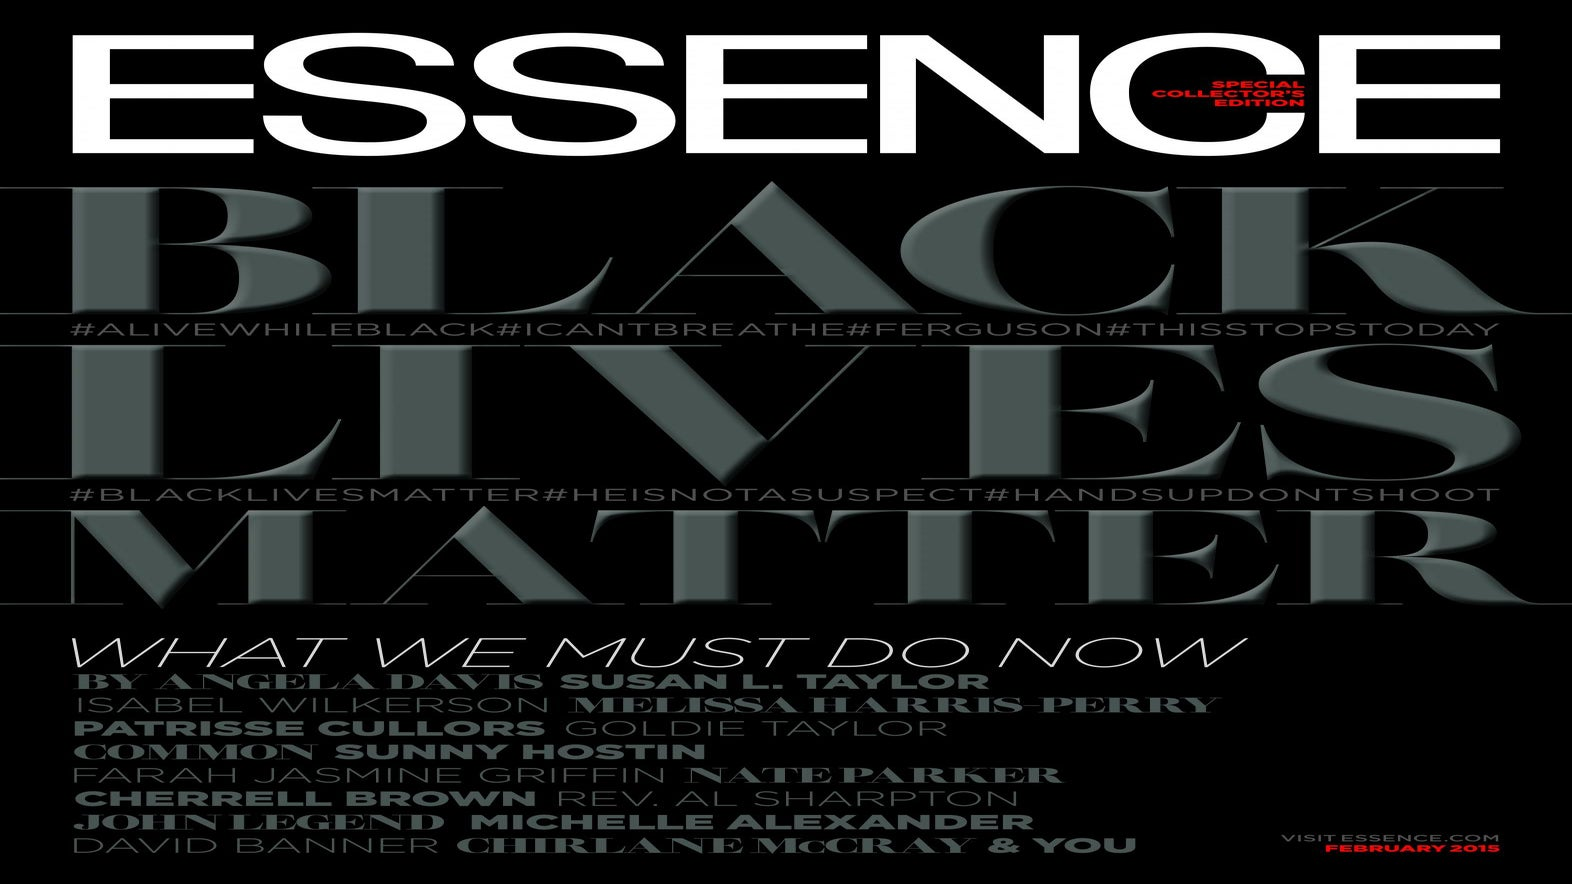 A Historic ESSENCE Cover and The Path Forward